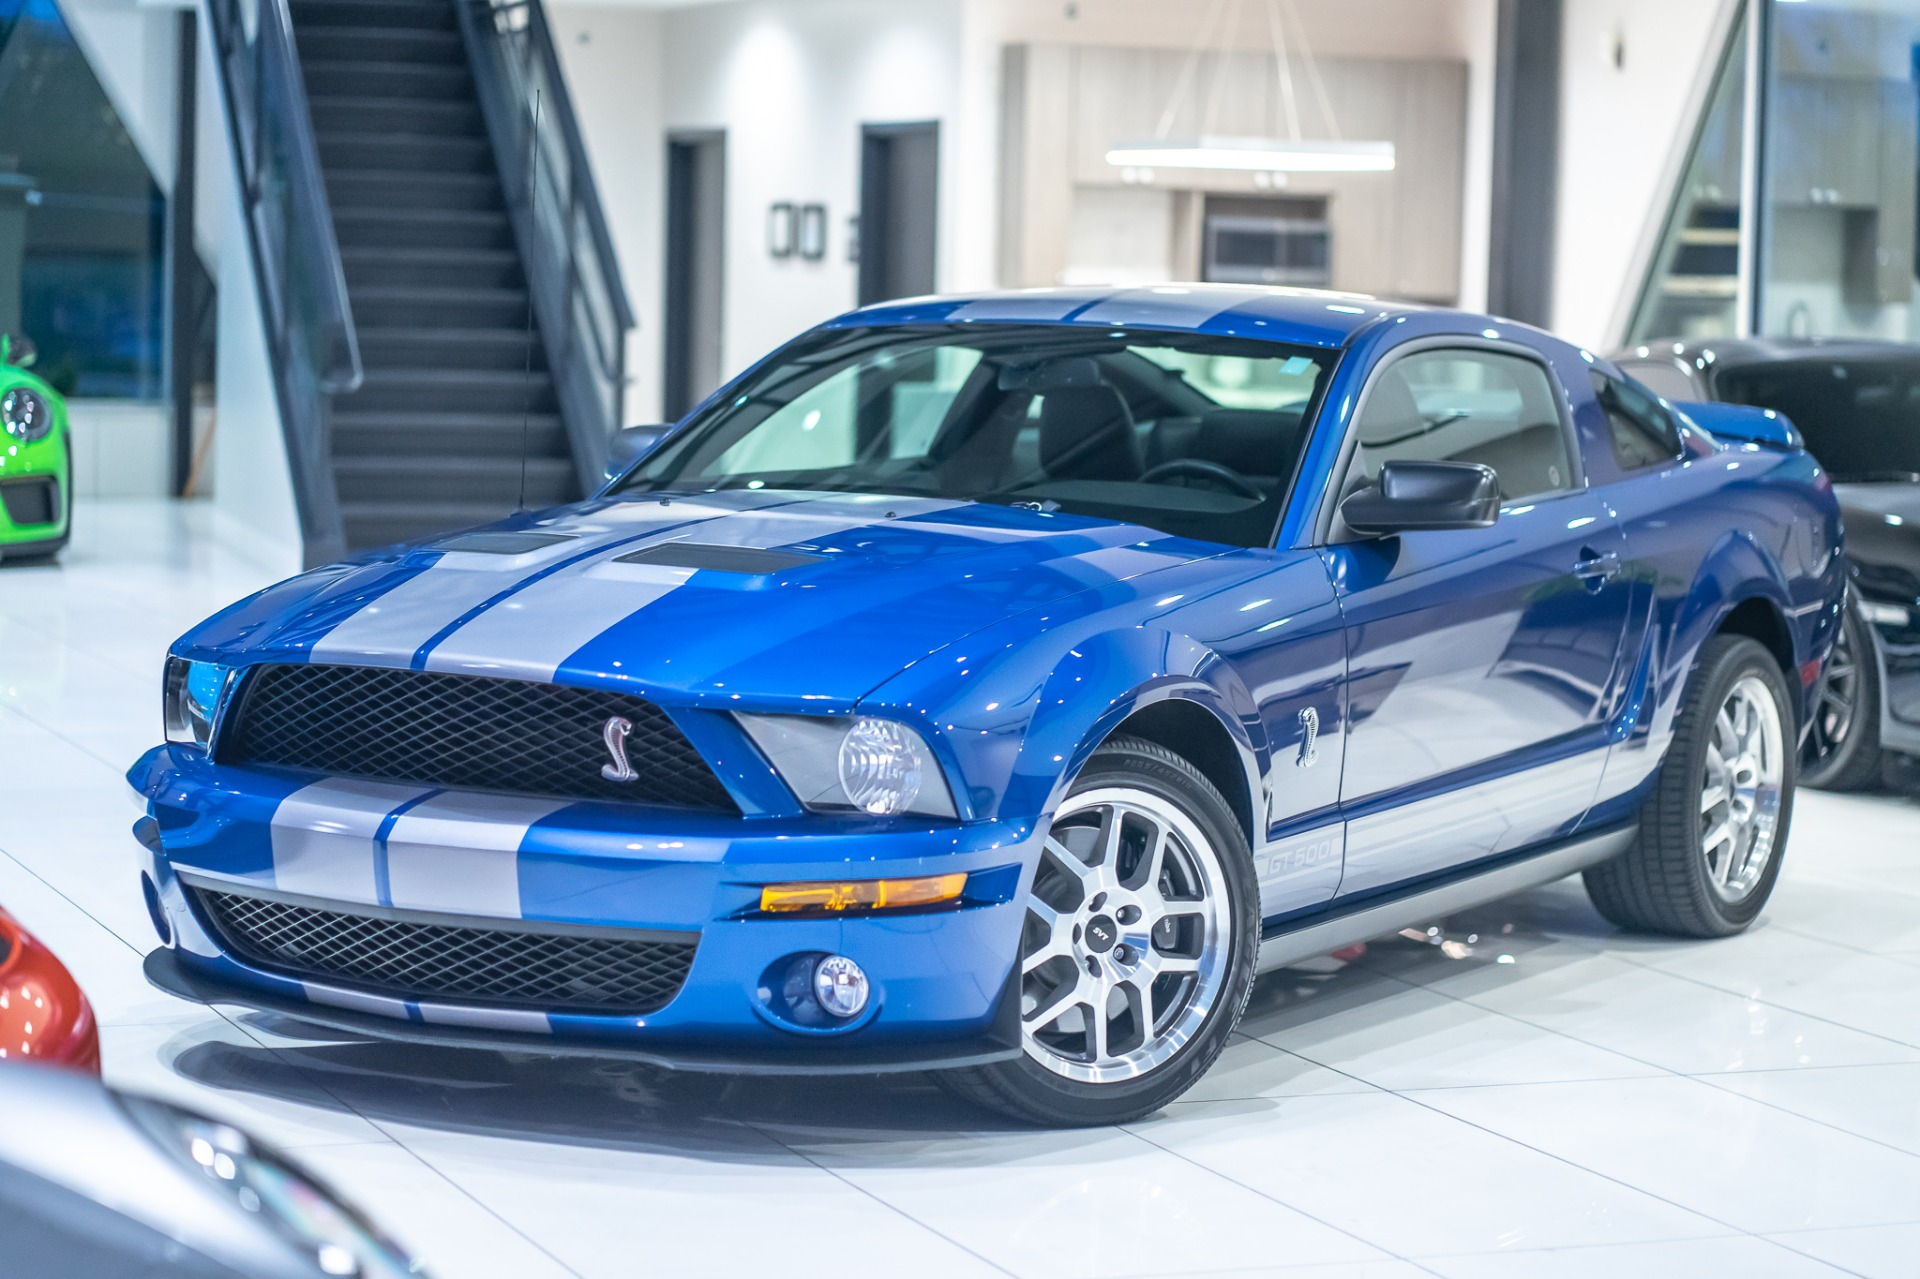 Used 2007 Ford Mustang Shelby GT500 For Sale (Special ...